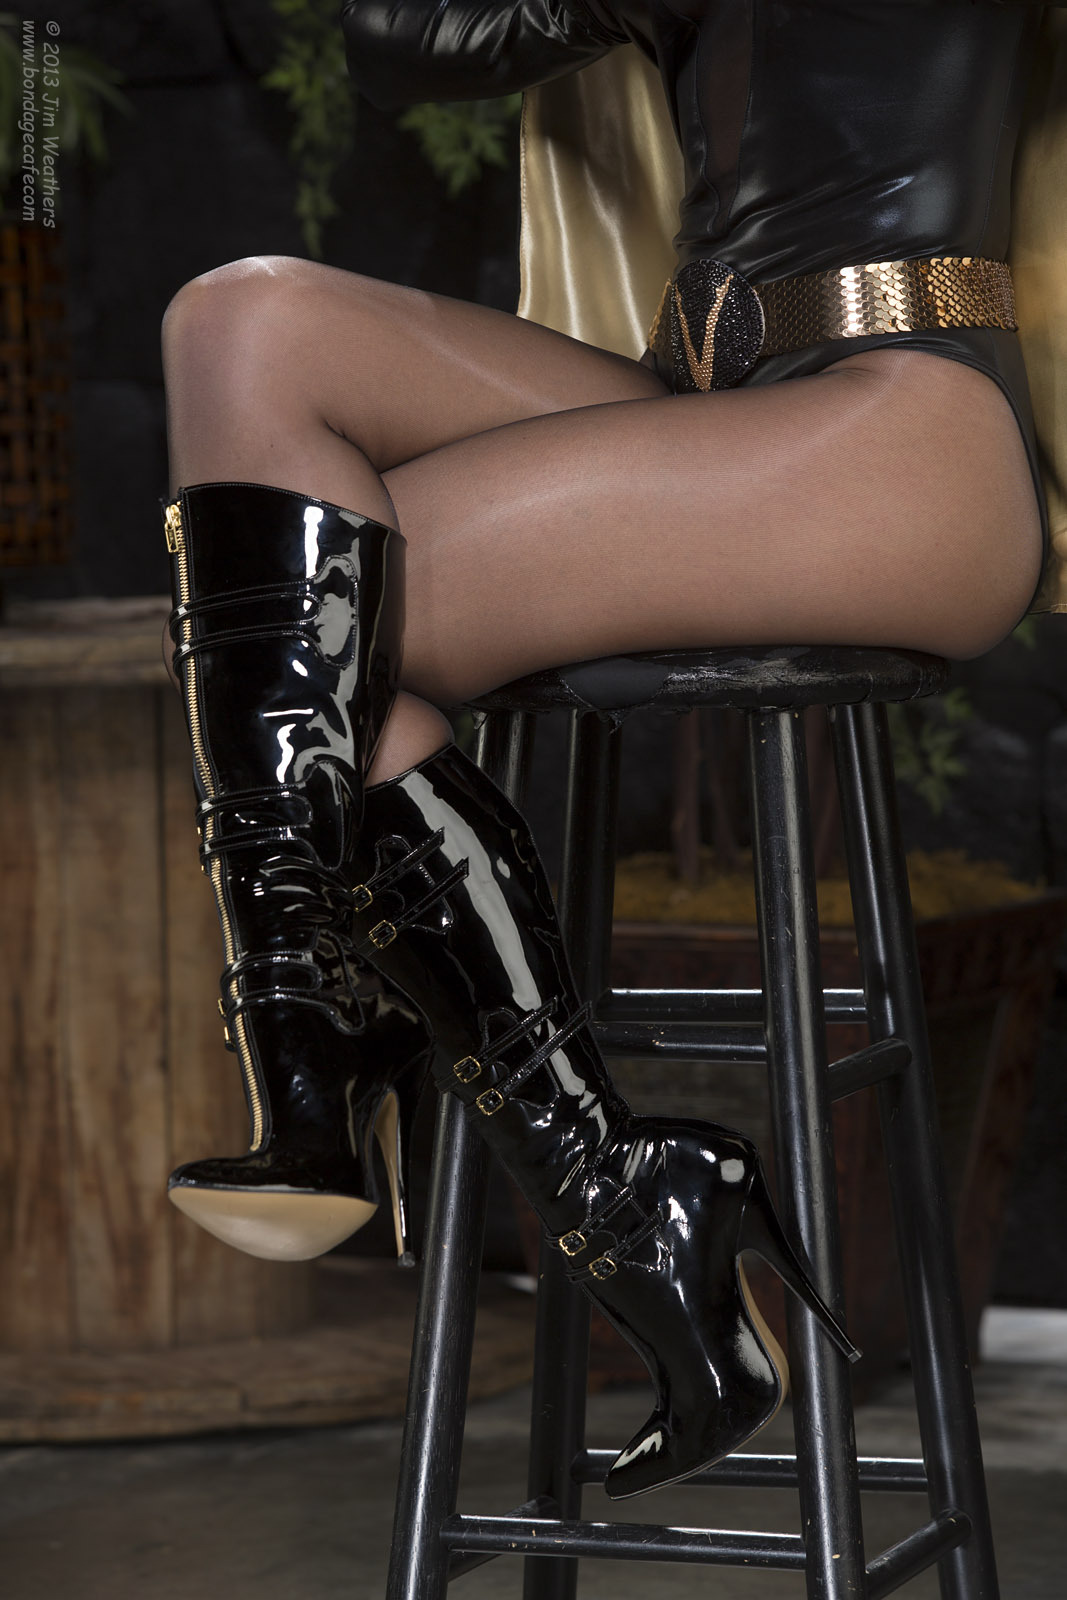 @RandyMoore007: Lovely close-up of the incredibly sexy boots by @FabFetish - just one of a slew of cheesecake and bondage photos featuring Randy as #UltraVixen up on the cafe today! #Bondage #Boots